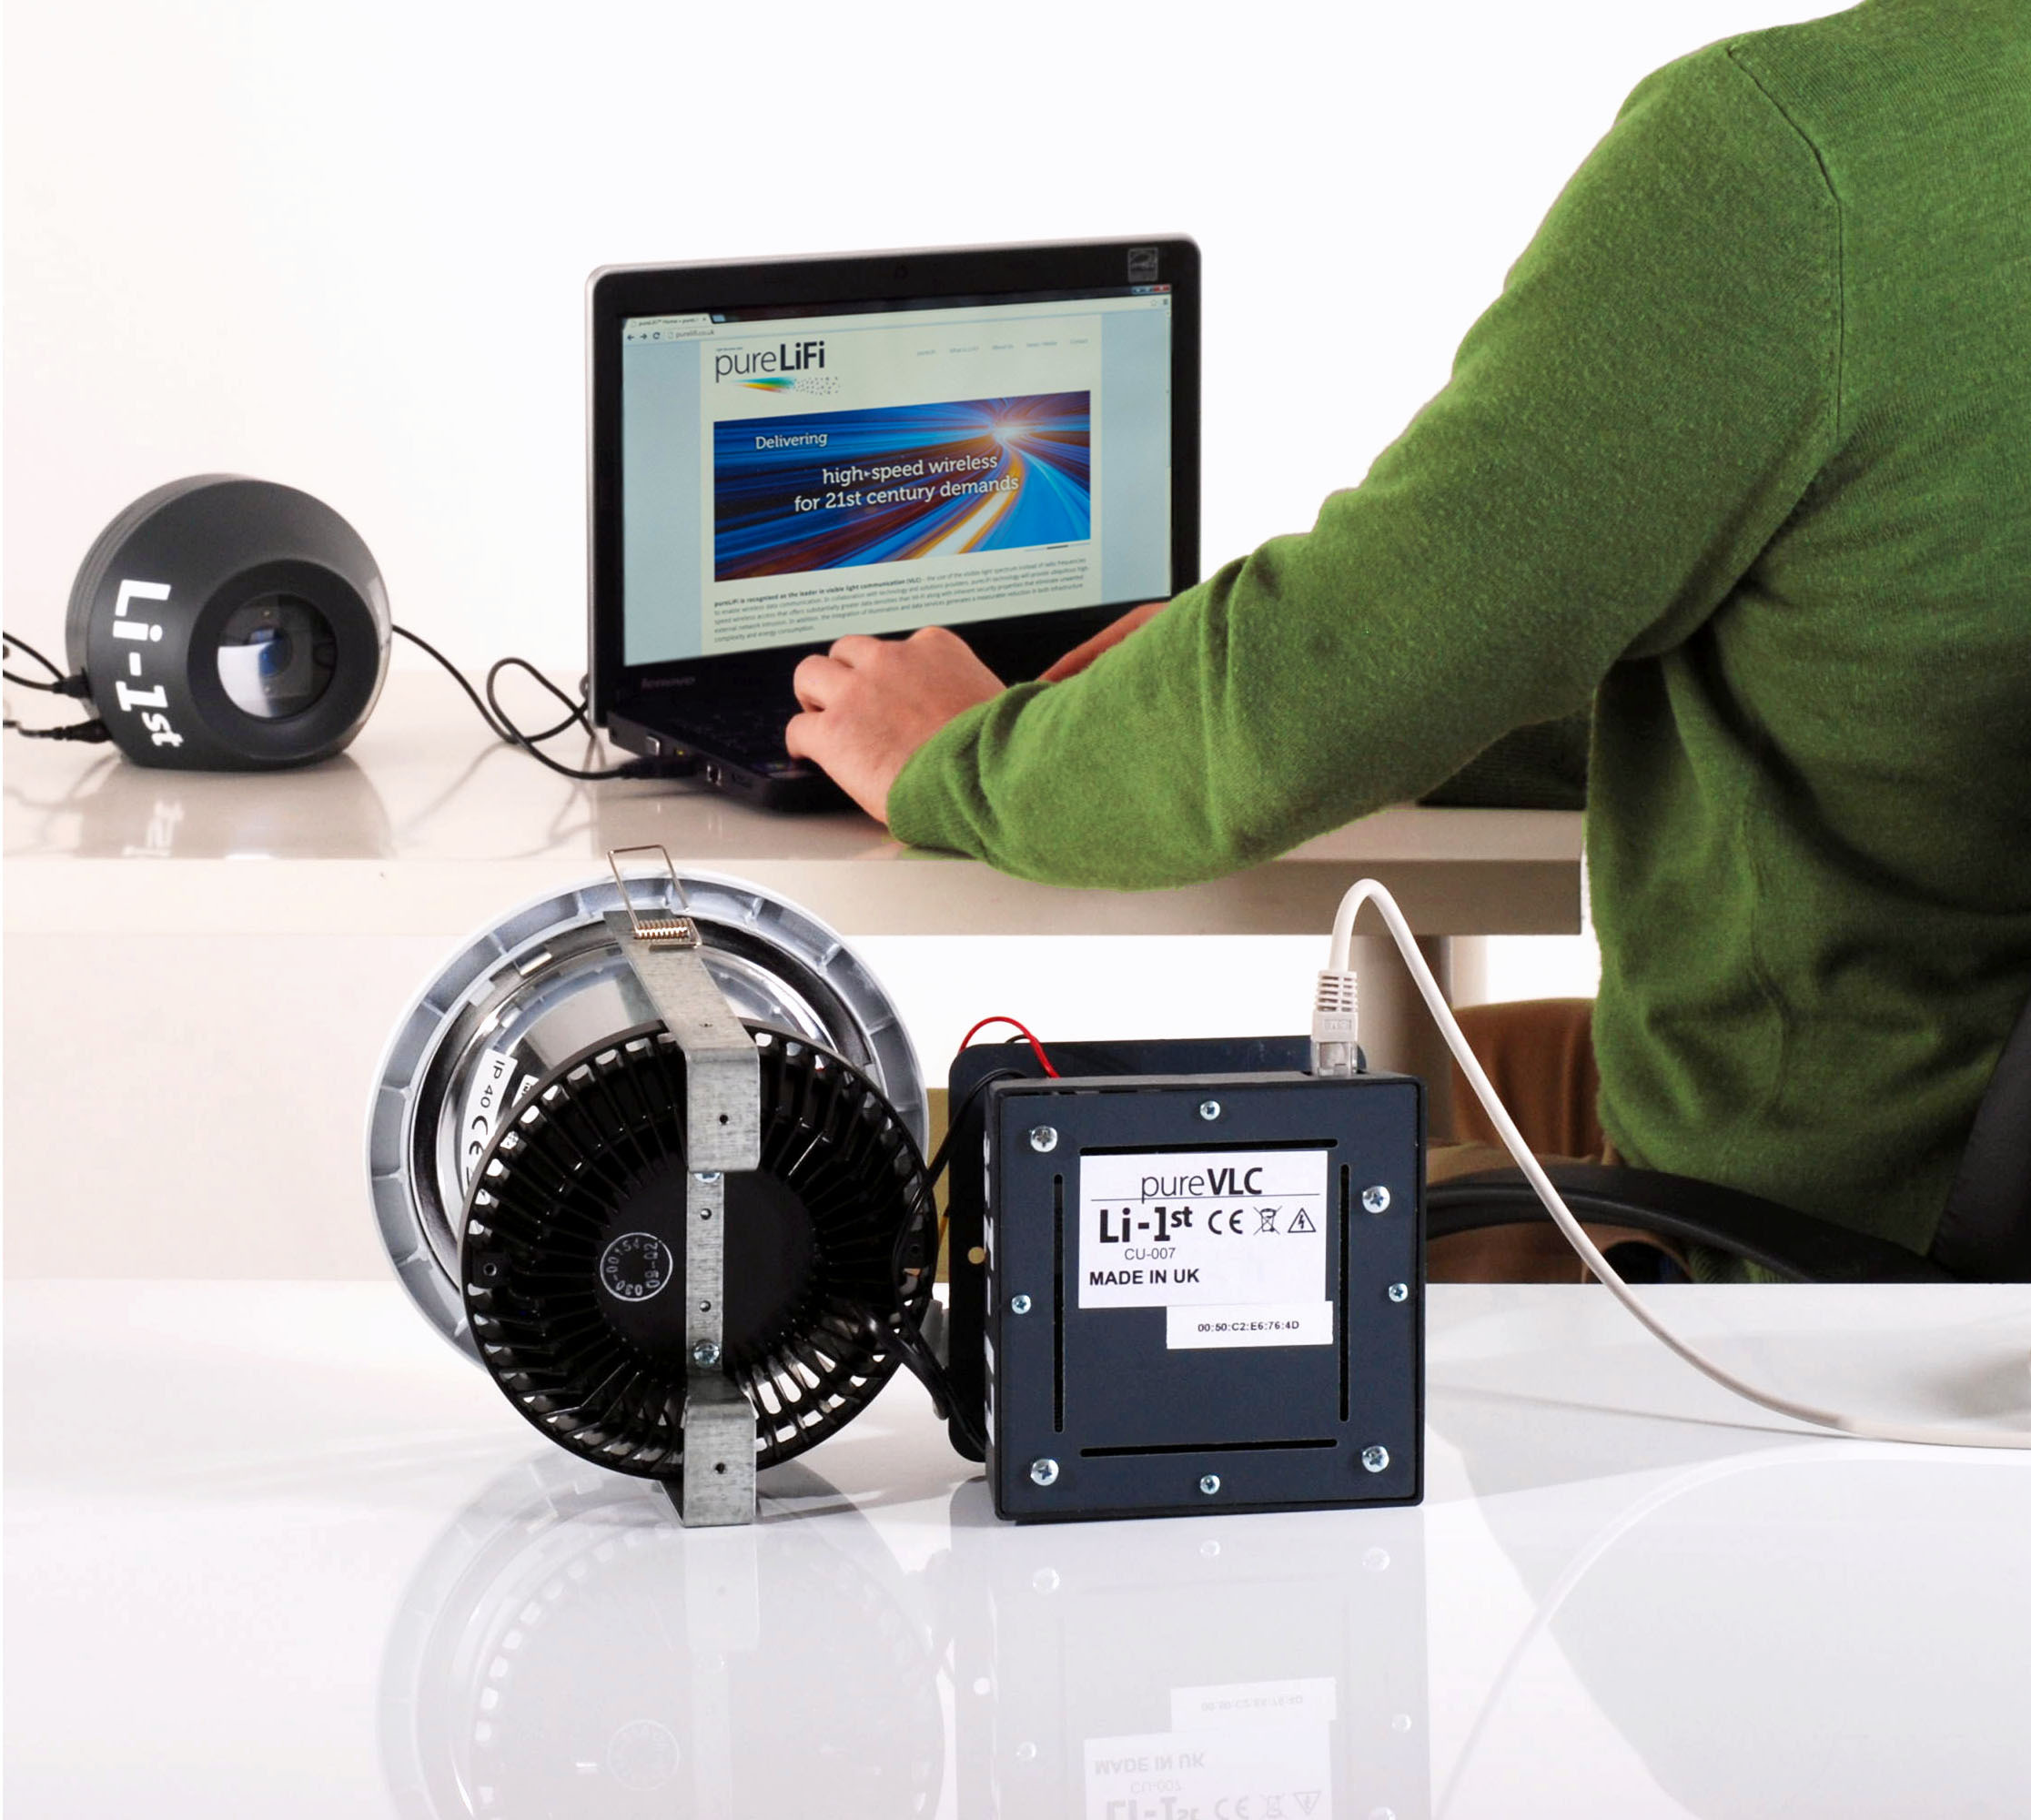 Li-1st, the world's first commercial Li-Fi product (Photo: Business Wire)